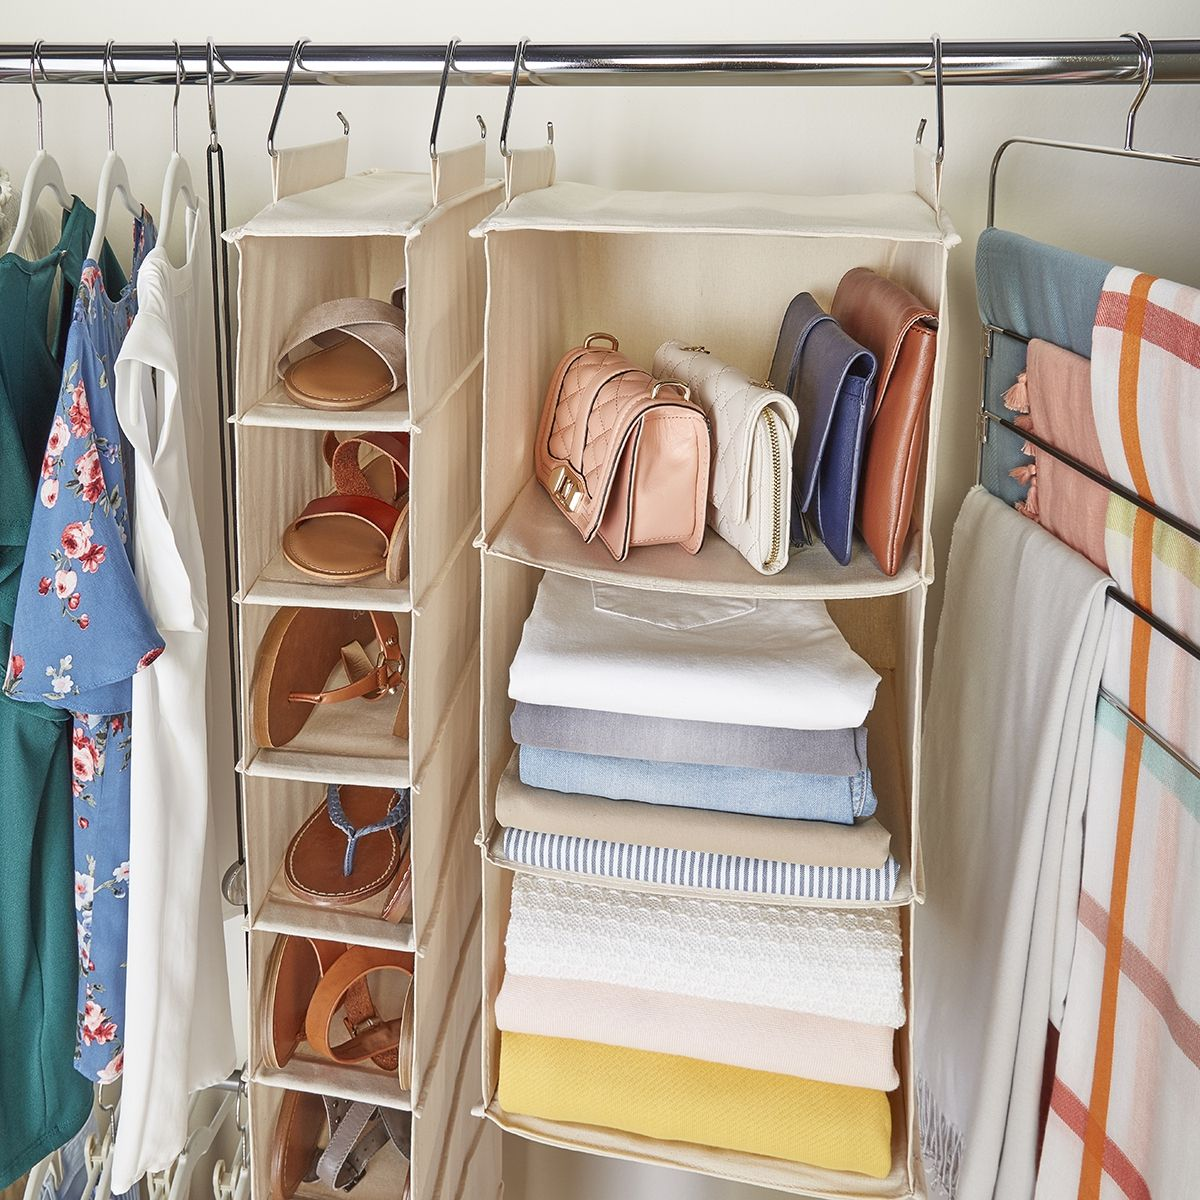 Hanging Closet Organizers Are A Great Way To Make The Most Of The Vertical Space In Your Closet An Hanging Closet Organizer Hanging Closet Closet Organization